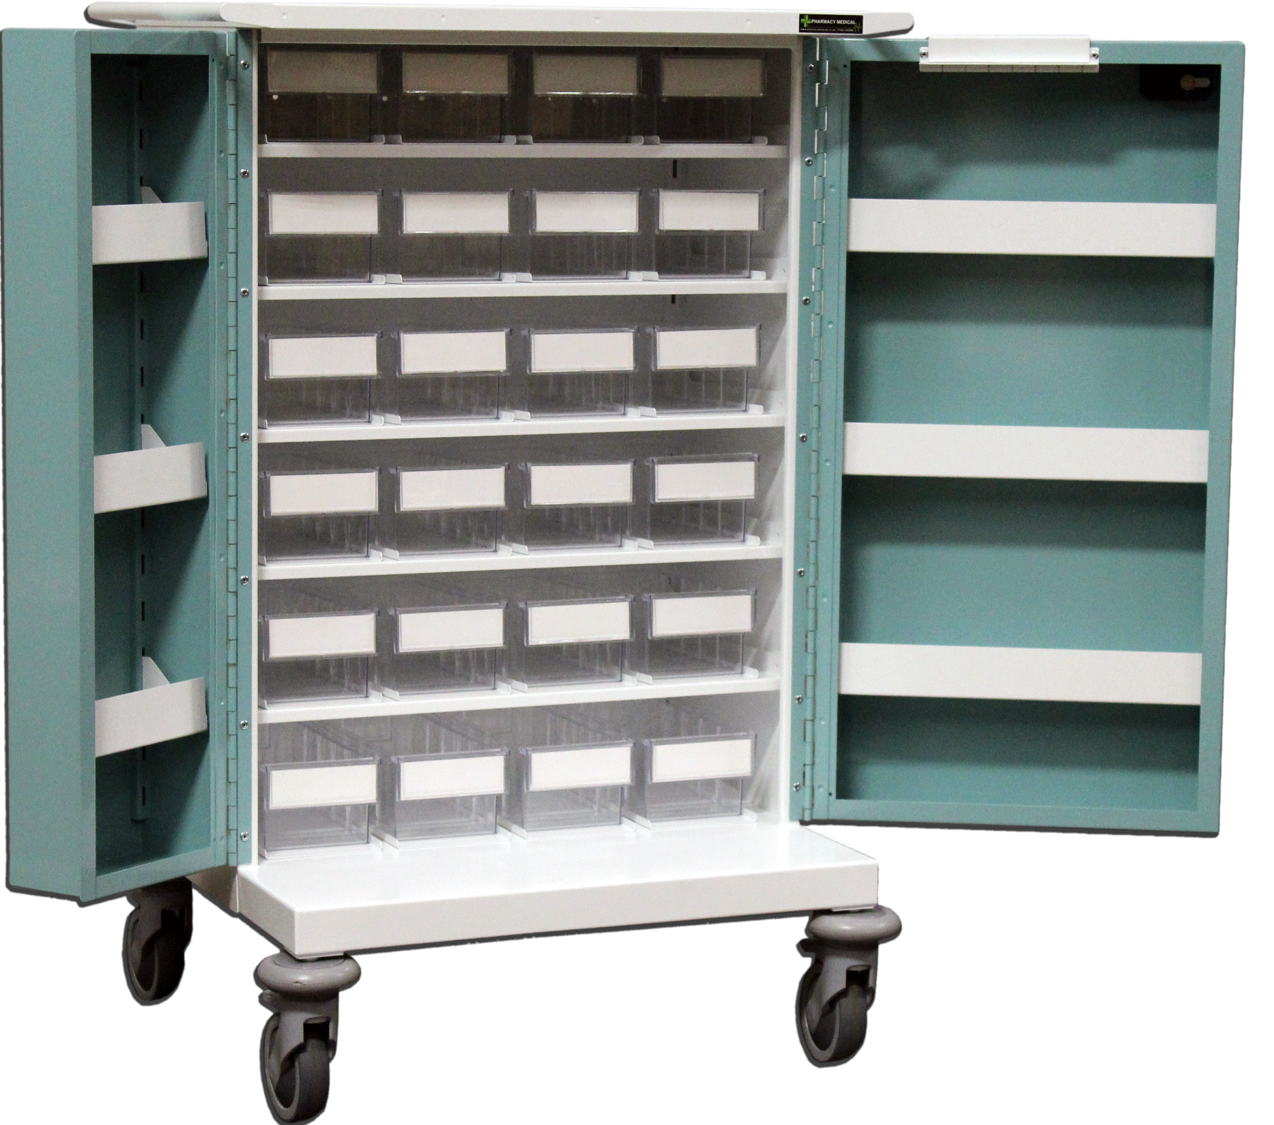 24 Tray Original Packaging Trolley